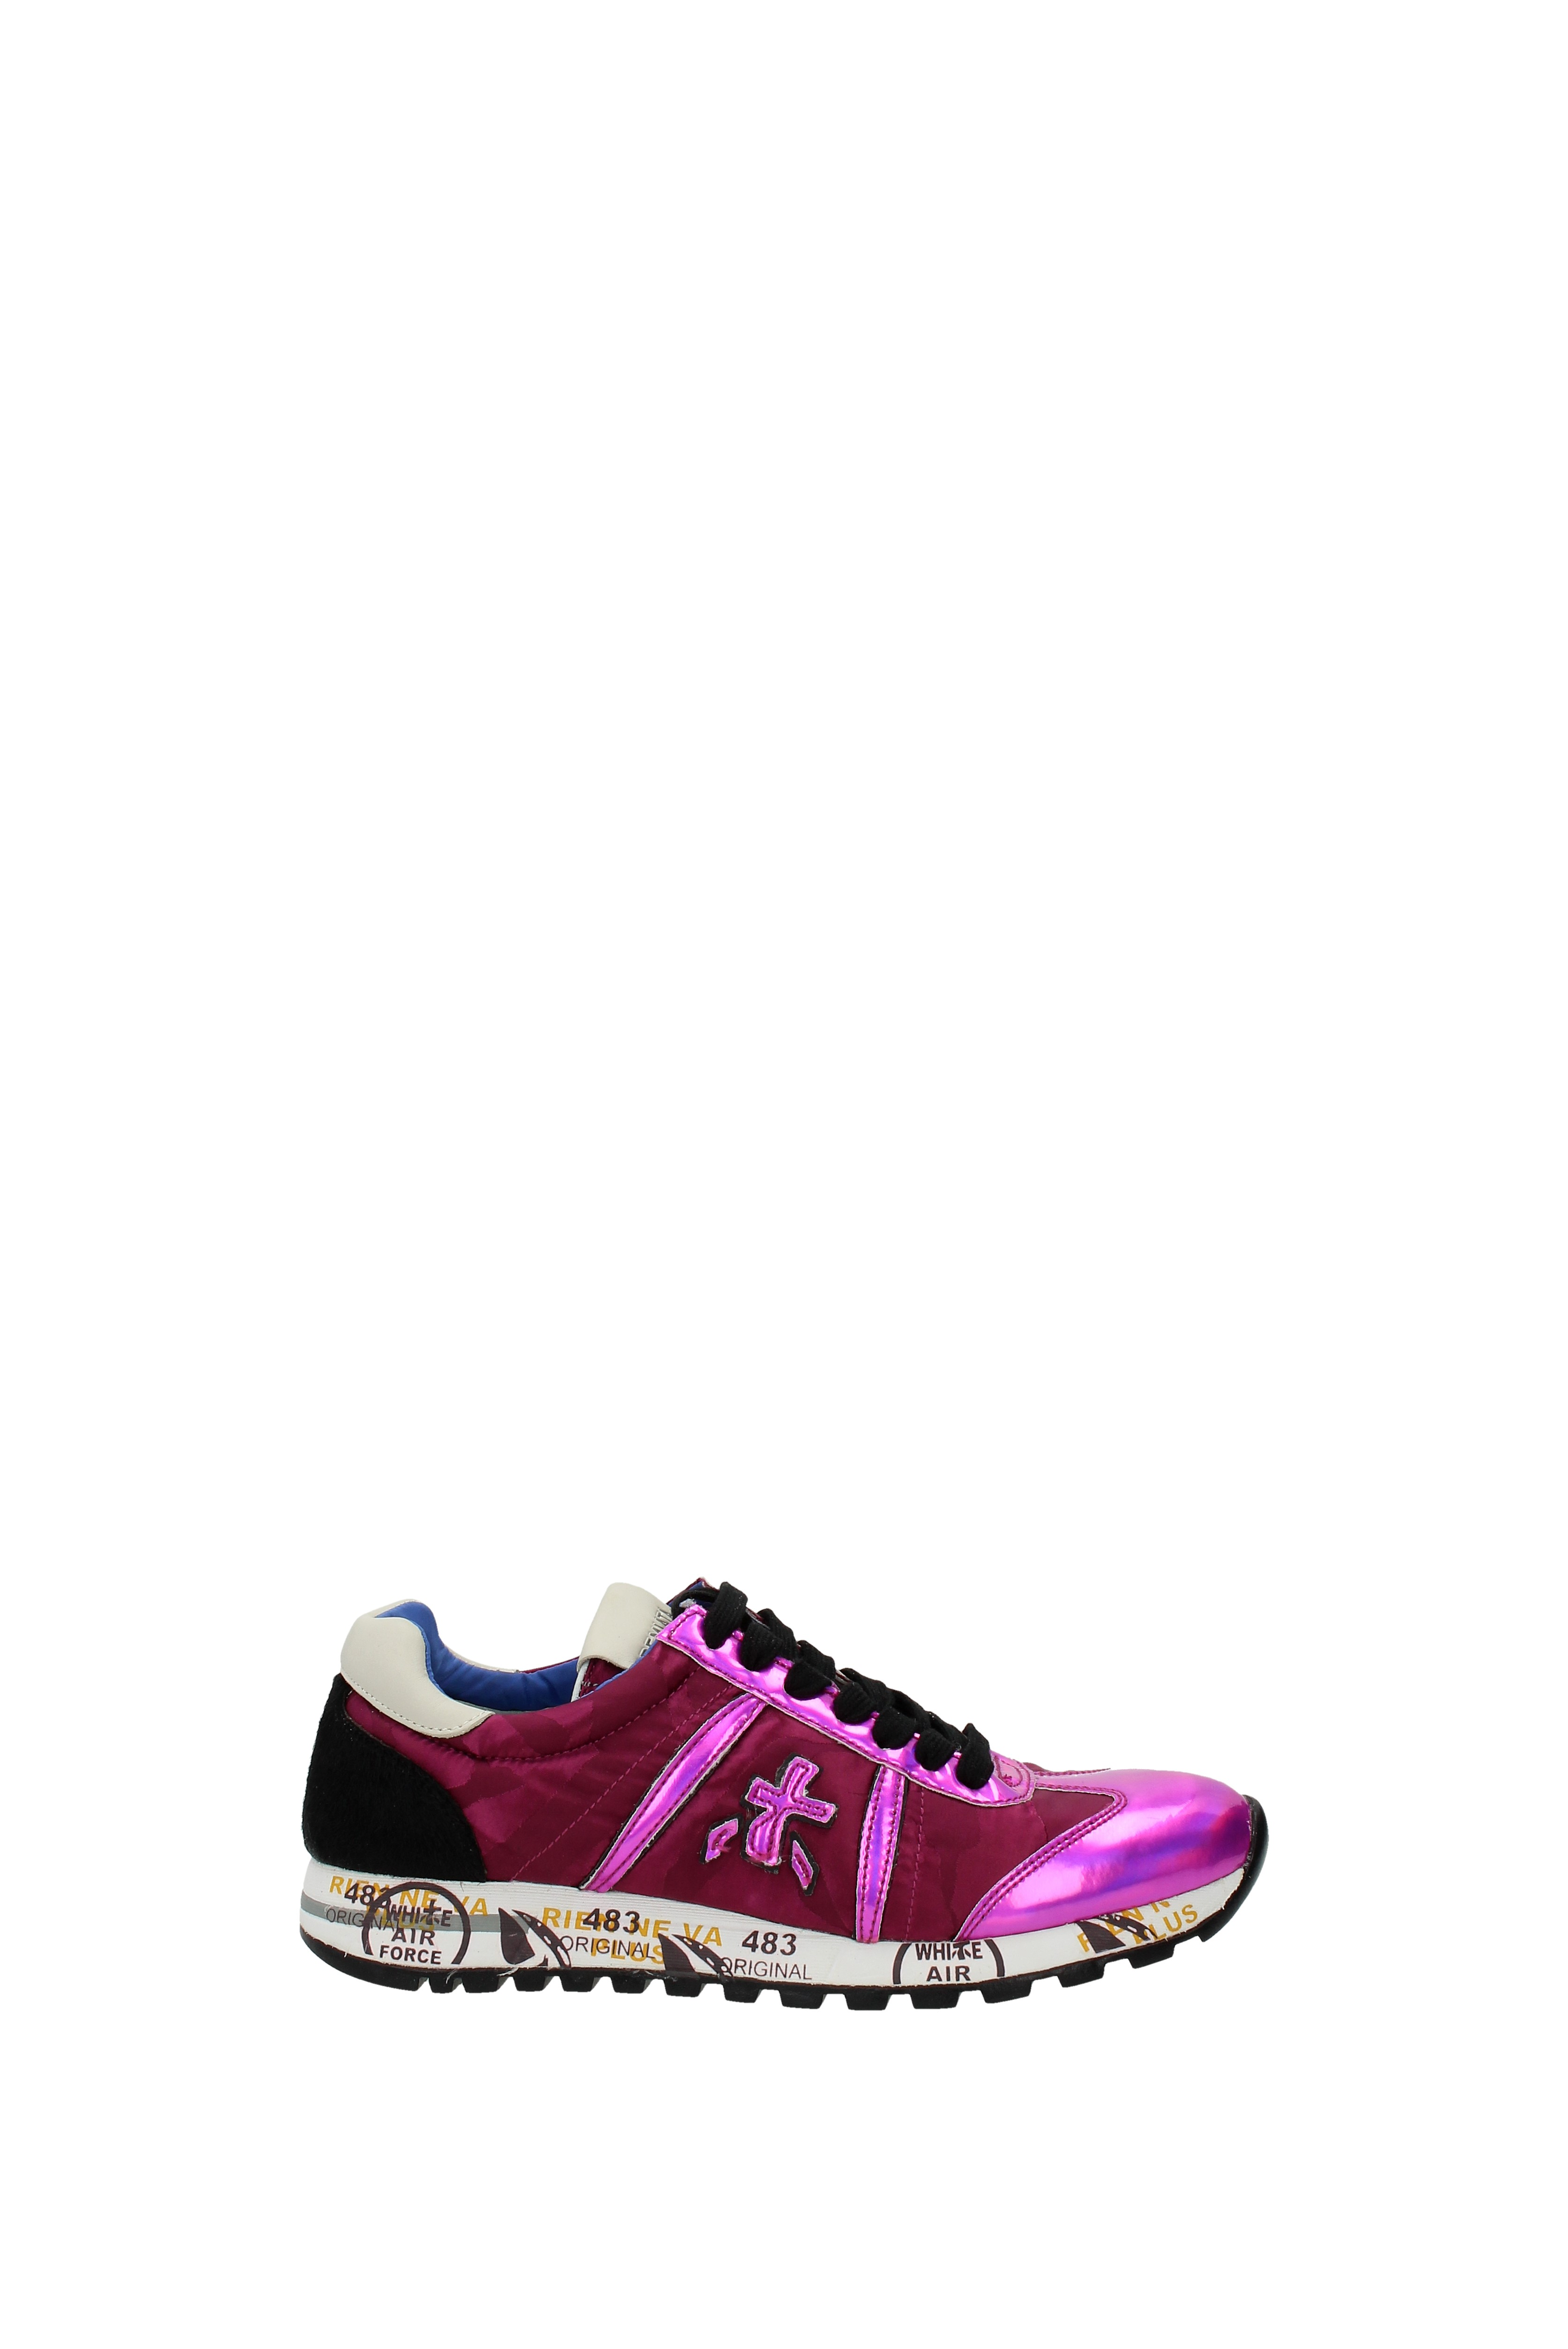 Premiata lucy lucy lucy Donna - Tessuto (LUCYD16) 1fdfba